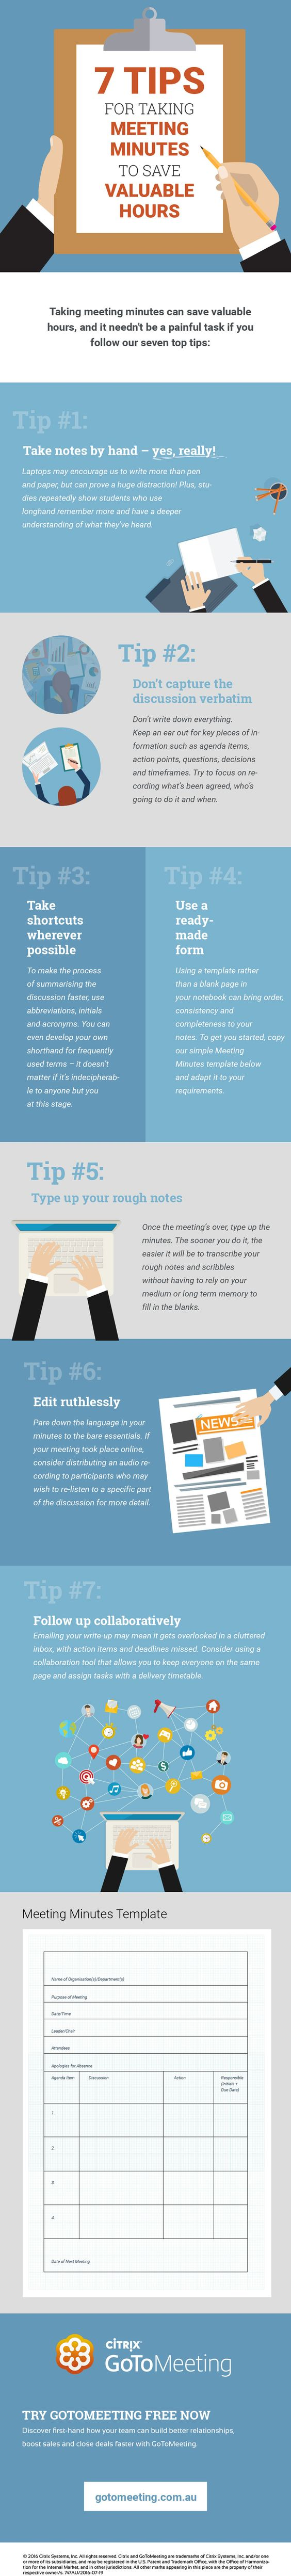 Never taken meeting minutes before? Need to know how now? Check ...